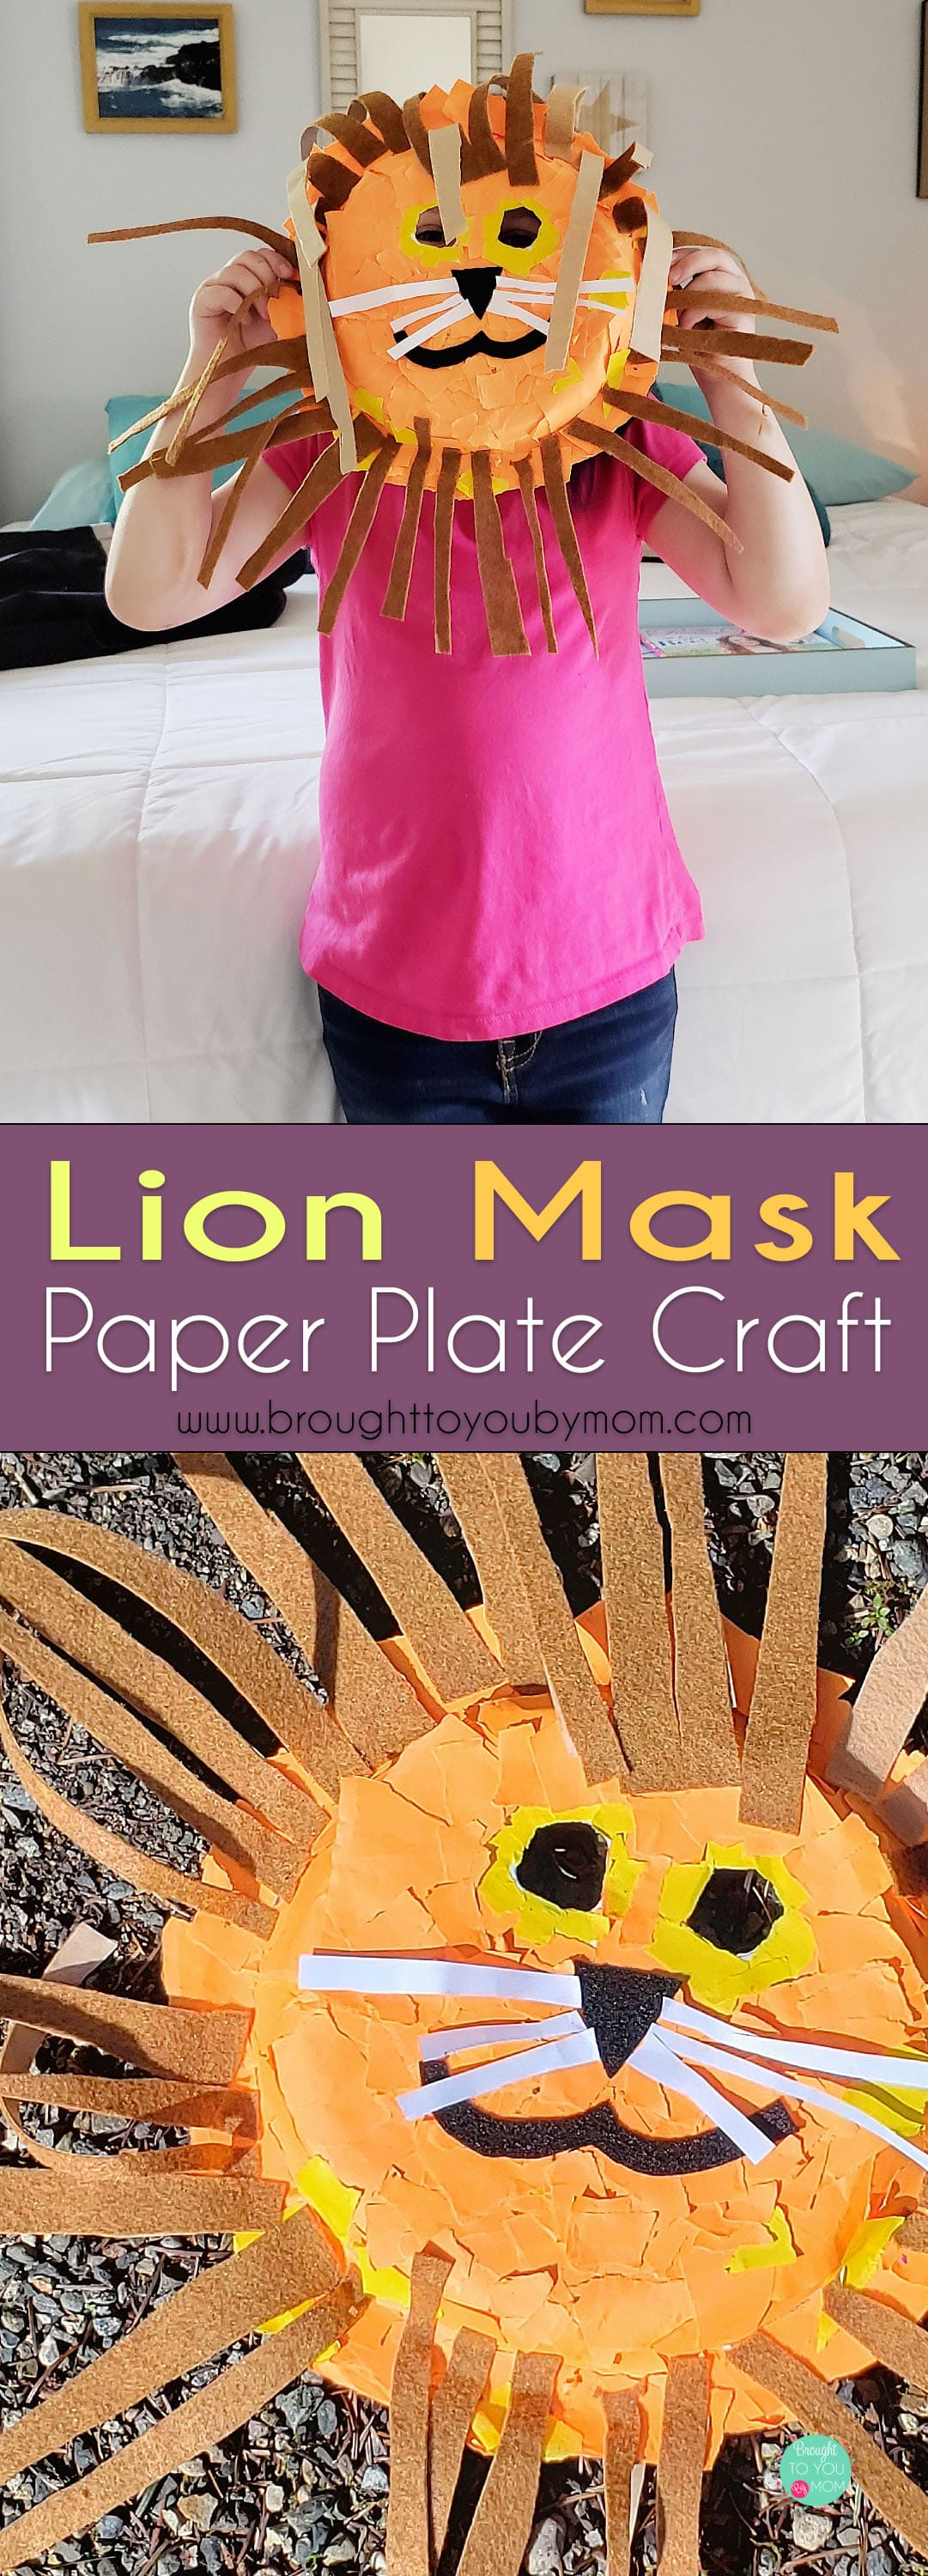 Need a fun kids craft? Check out this lion mask paper plate. This tutorial on how to make a paper plate lion mask is simple and fun for a rainy day kids activity. #kidscrafts #rainyday #kidsactivities #kidsideas #lionmask